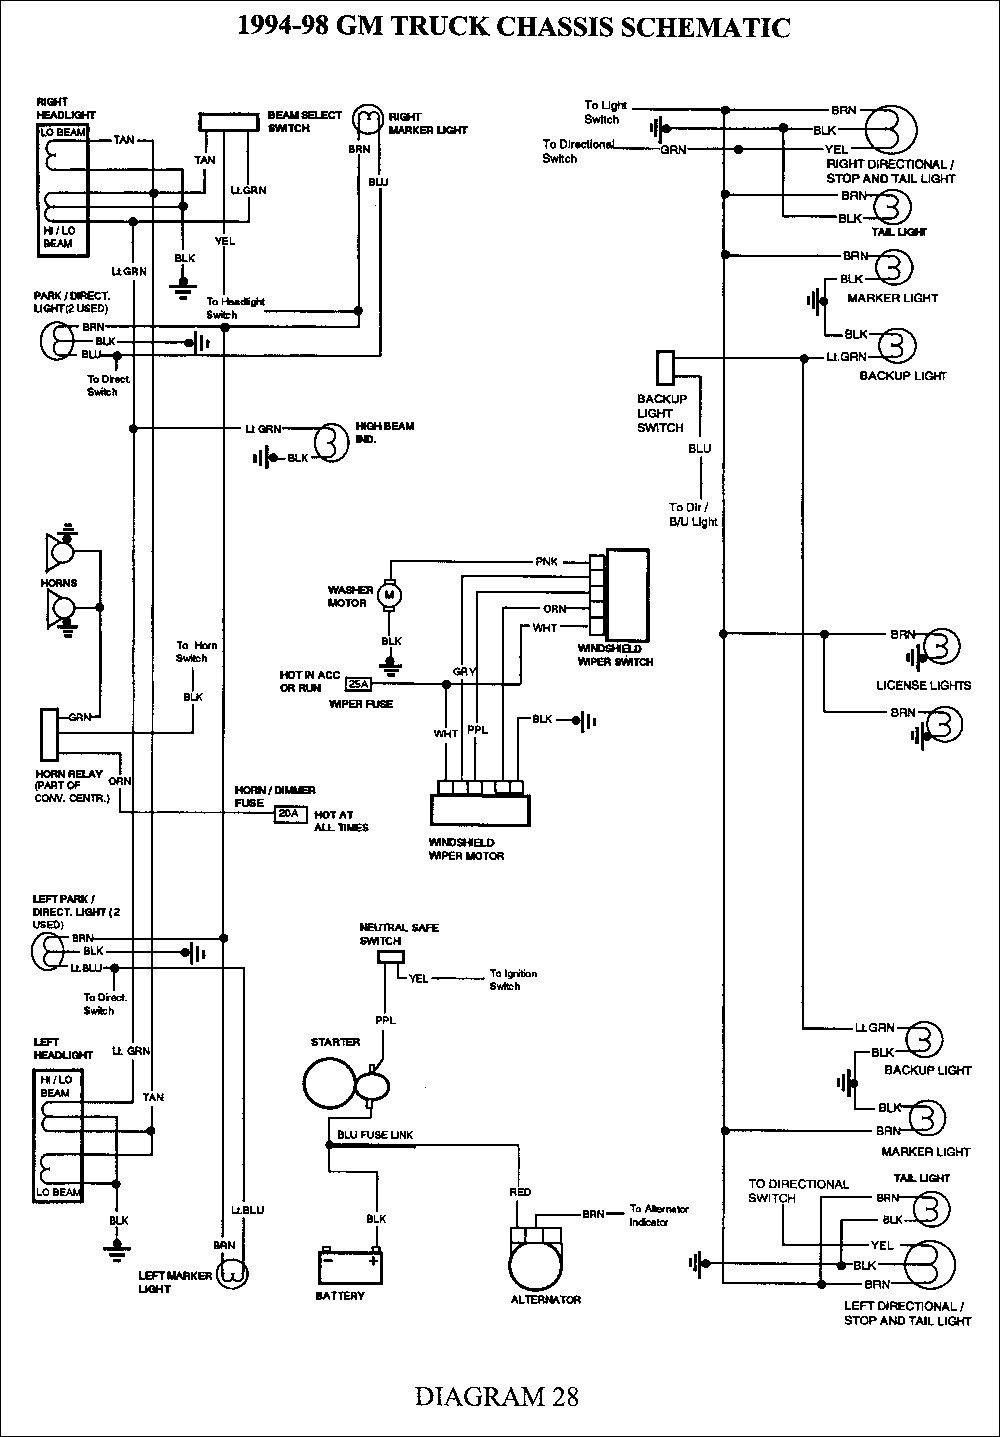 hight resolution of 1984 chevy truck wiring connectors data wiring diagram 1984 chevy truck wiring connectors